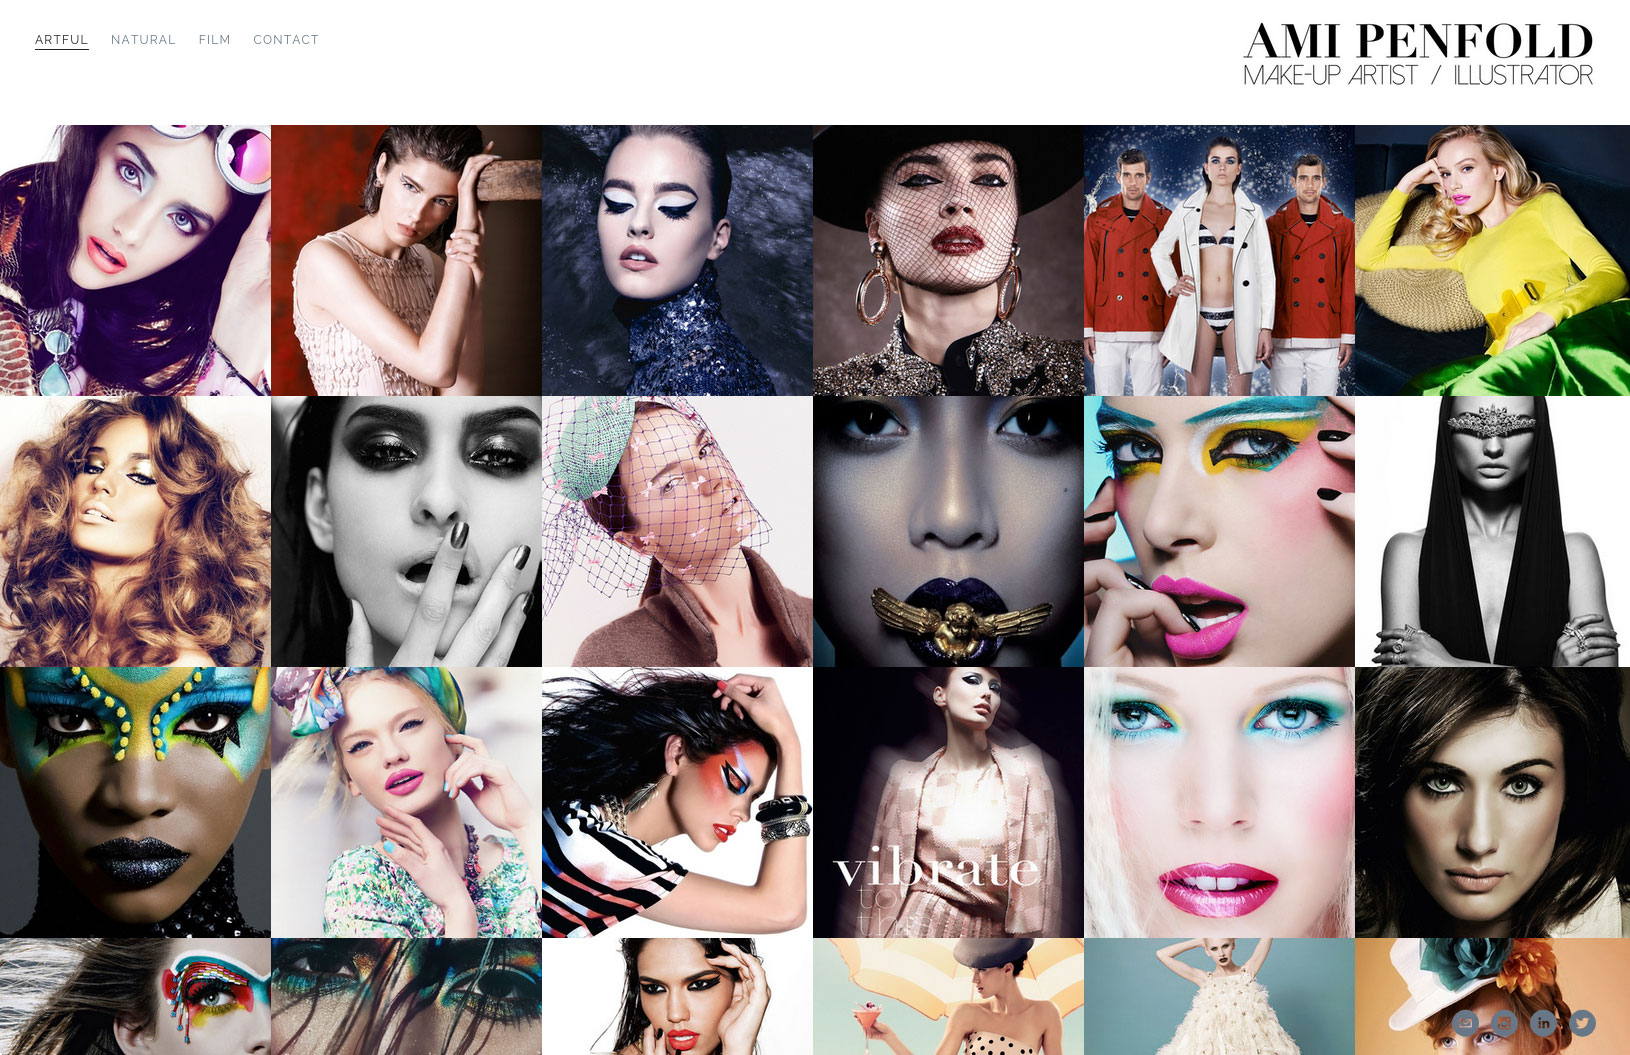 many photographs of make-up design on models